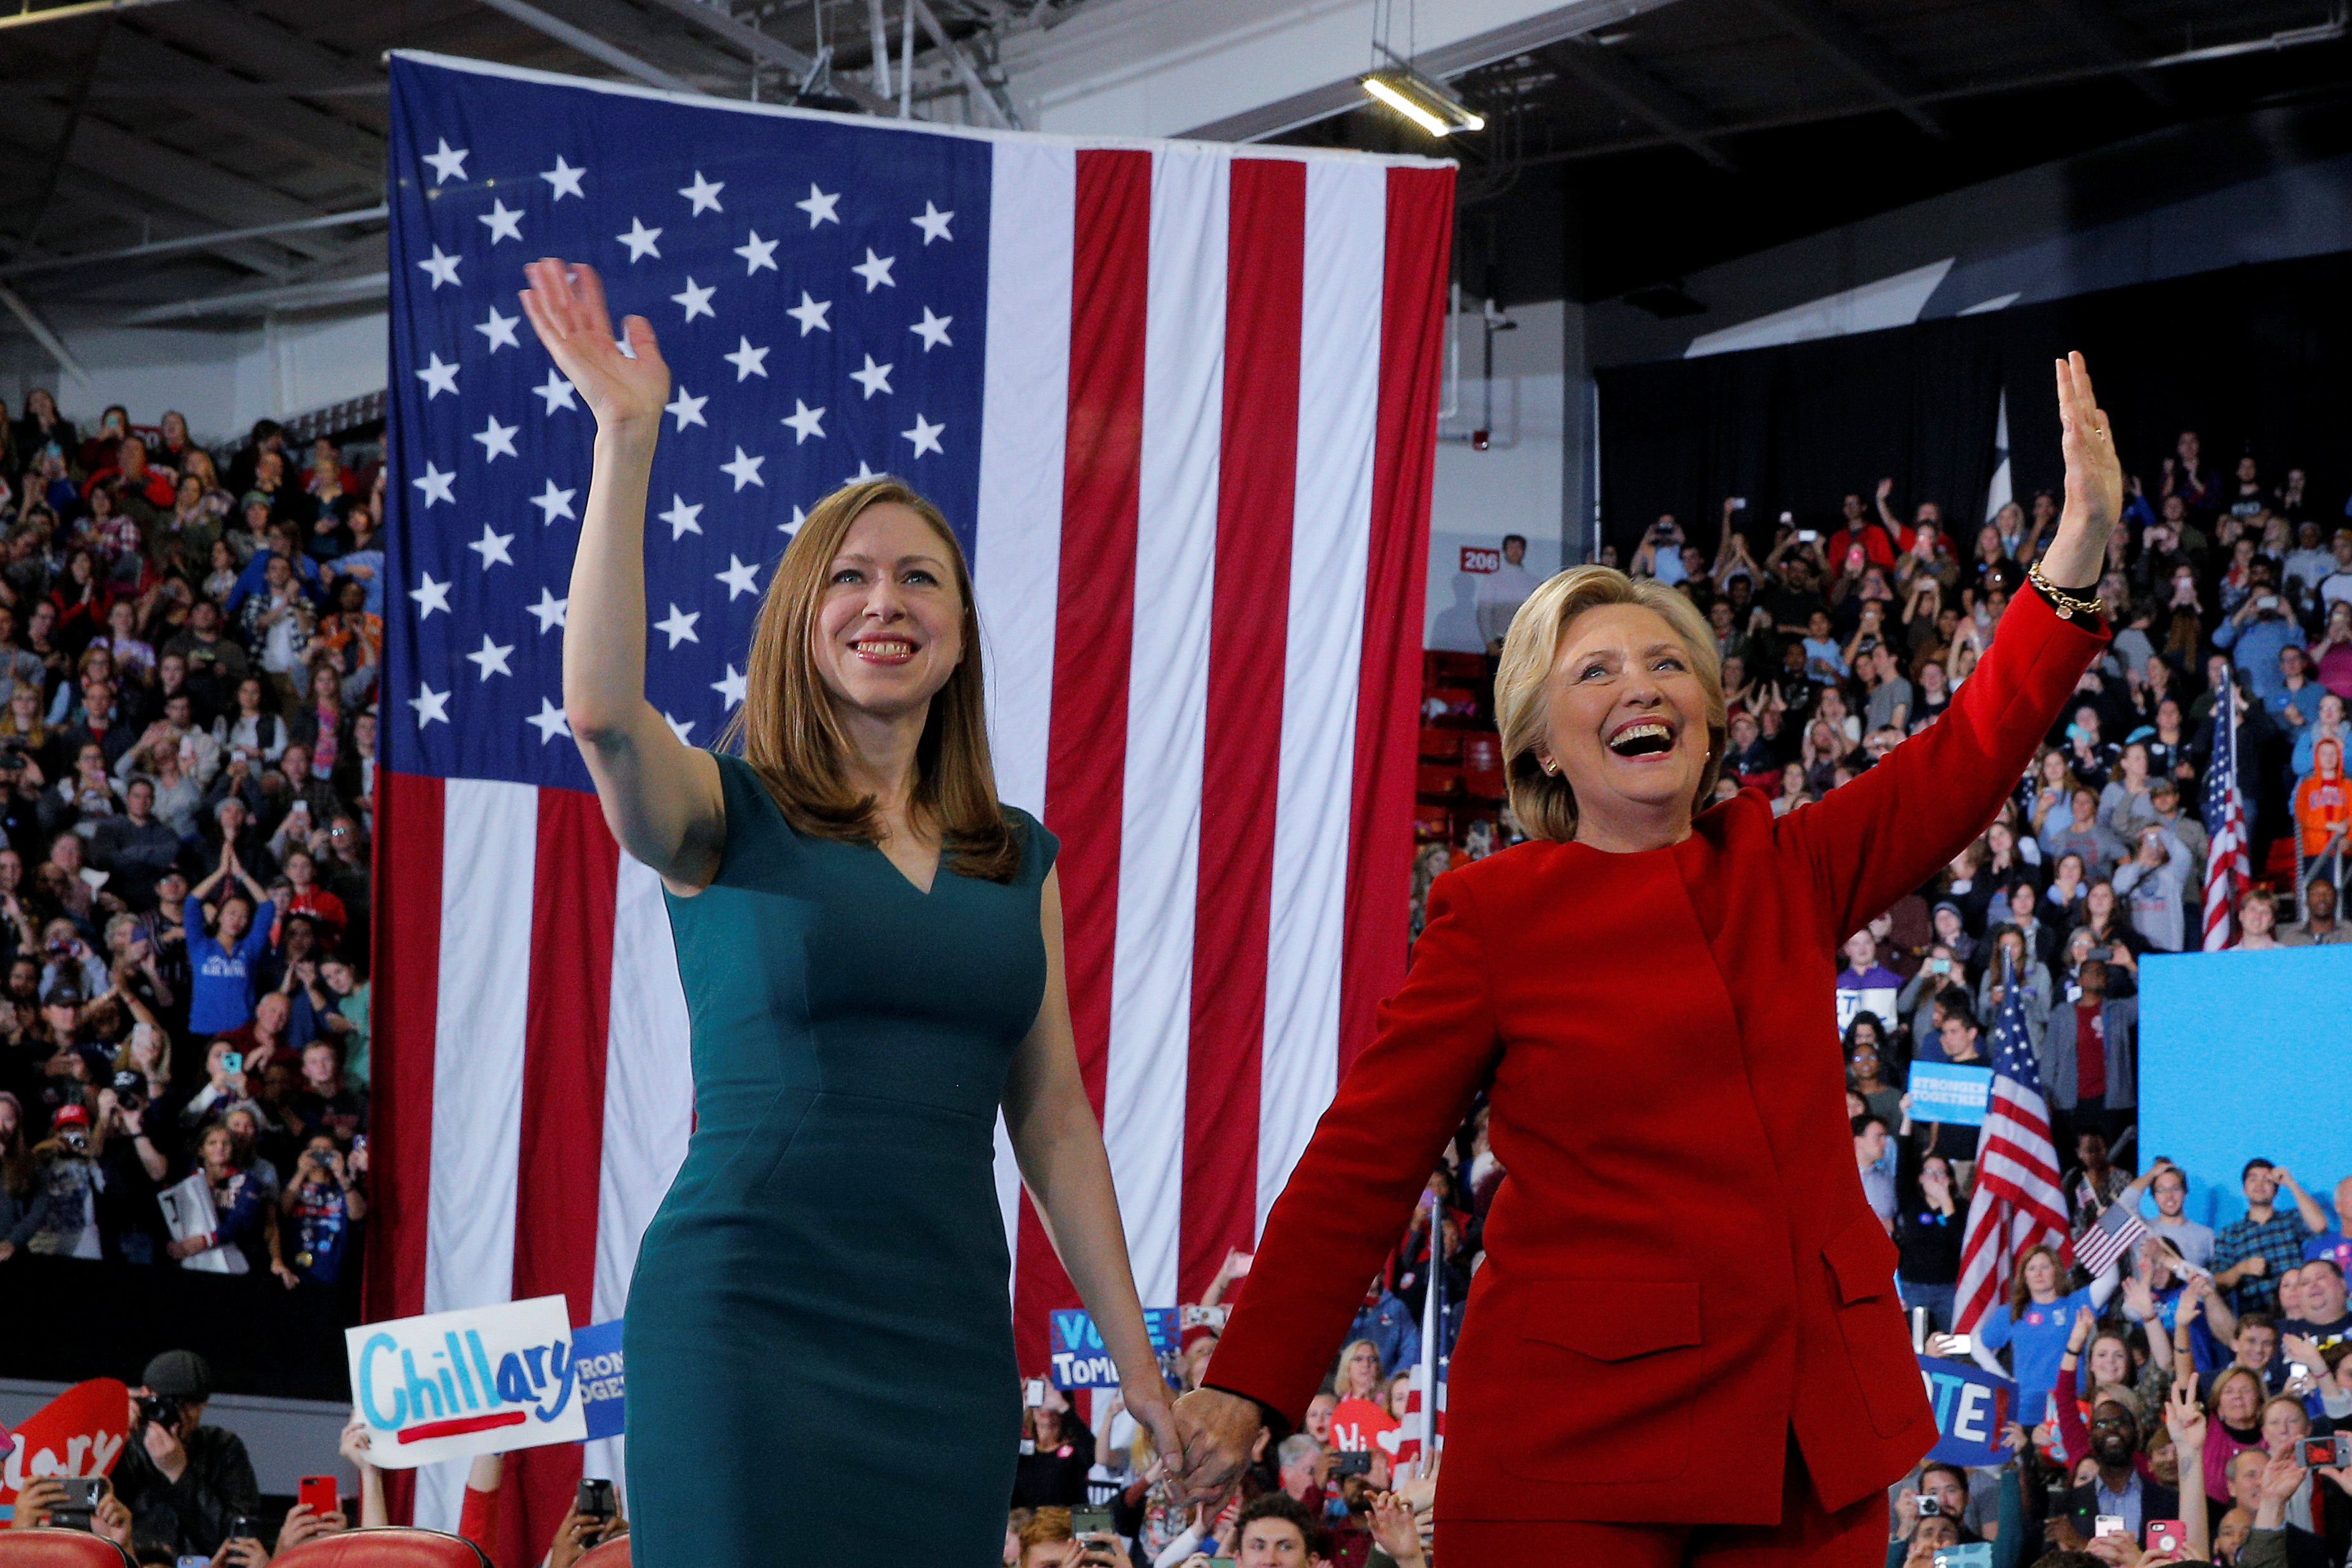 U.S. Democratic presidential nominee Hillary Clinton and her daughter Chelsea wave to the crowd at a campaign rally in Raleigh, North Carolina, U.S. Nov. 8, 2016. REUTERS/Brian Snyder